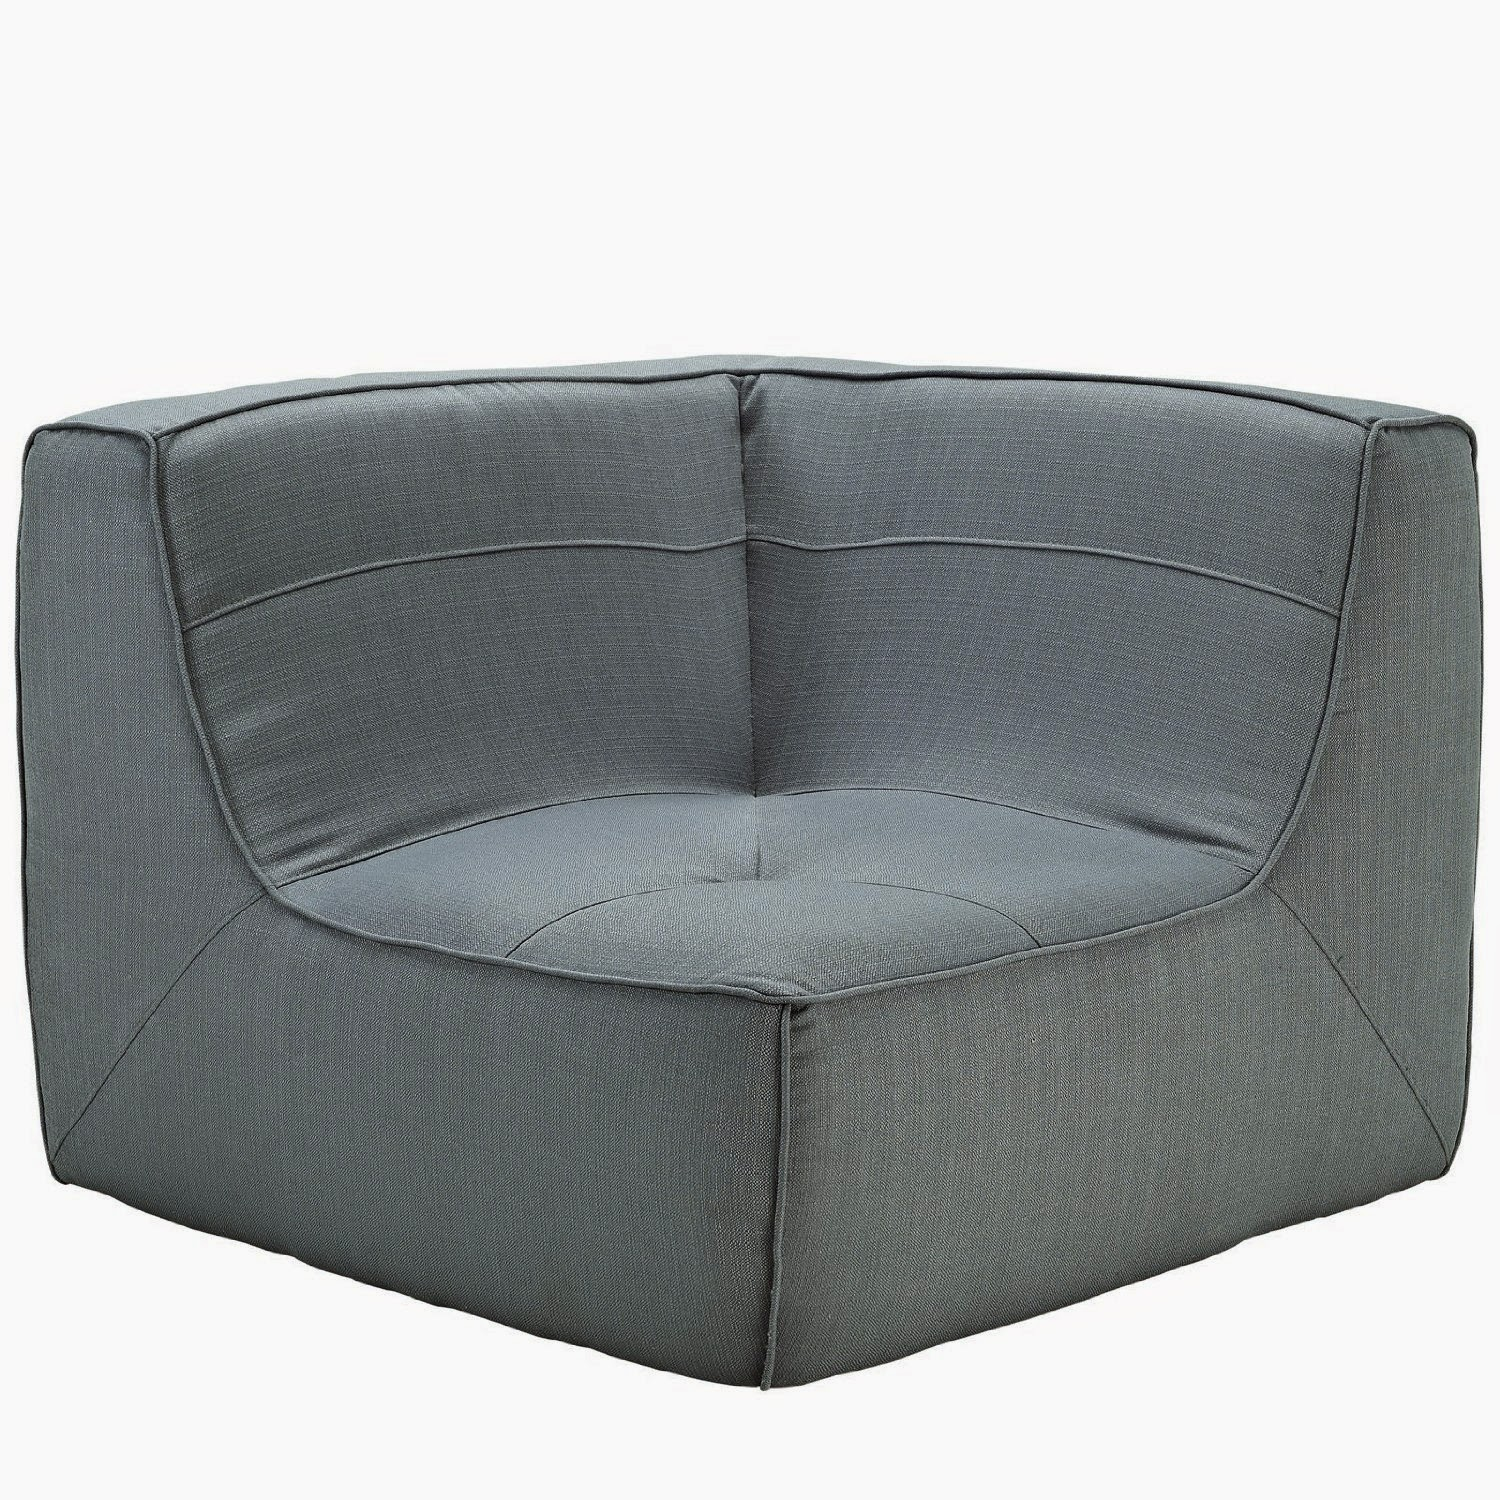 curved sofas for sale curved loveseat sofa -